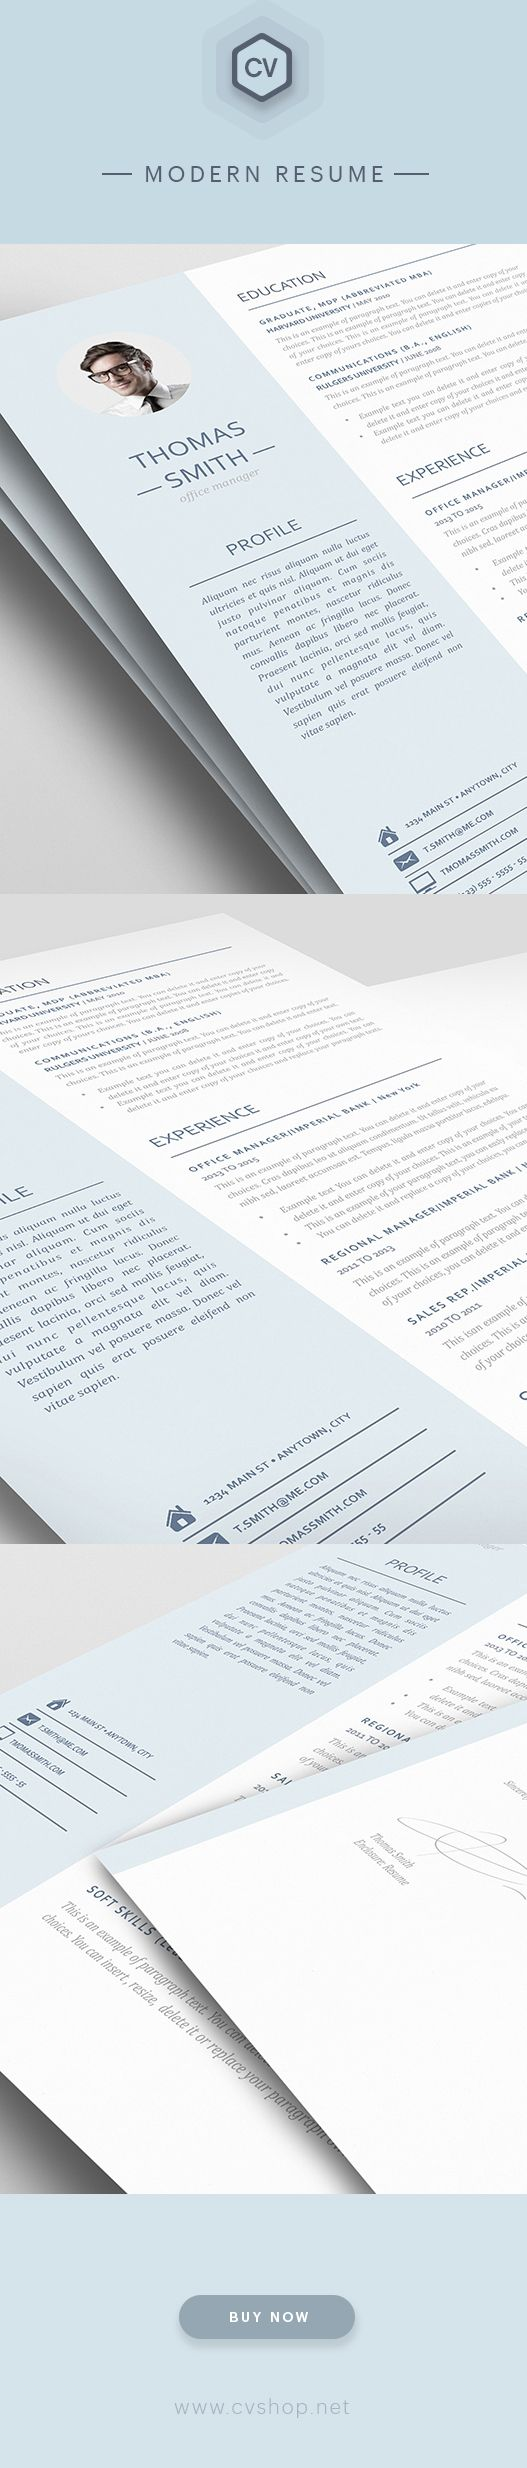 academic cover letter sample%0A google docs templates cover letter formal letter formats samples